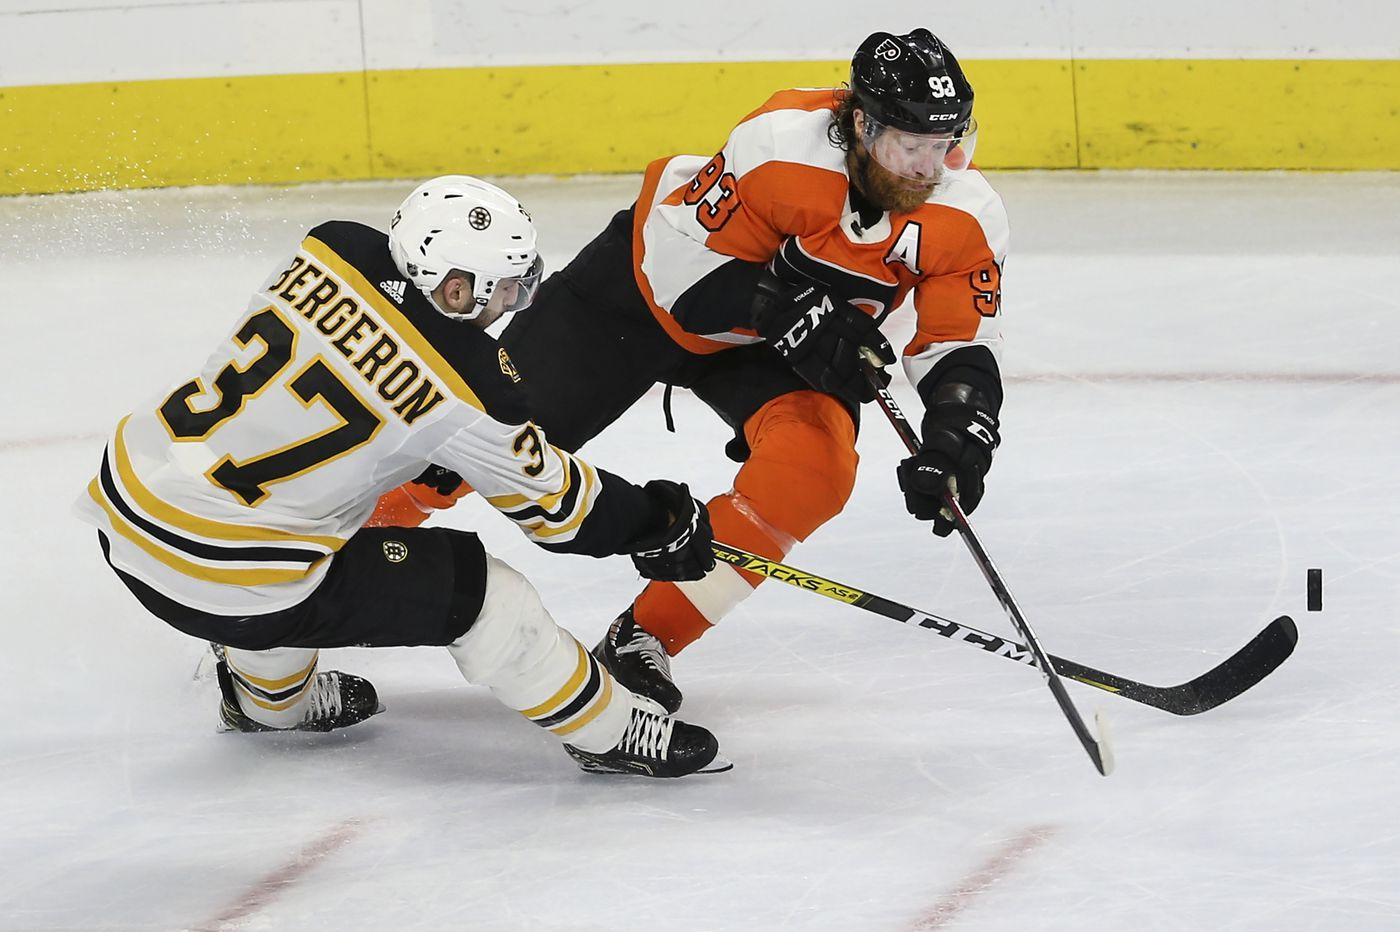 Scott Laughton blames himself for crucial mistake in Flyers' loss to Bruins